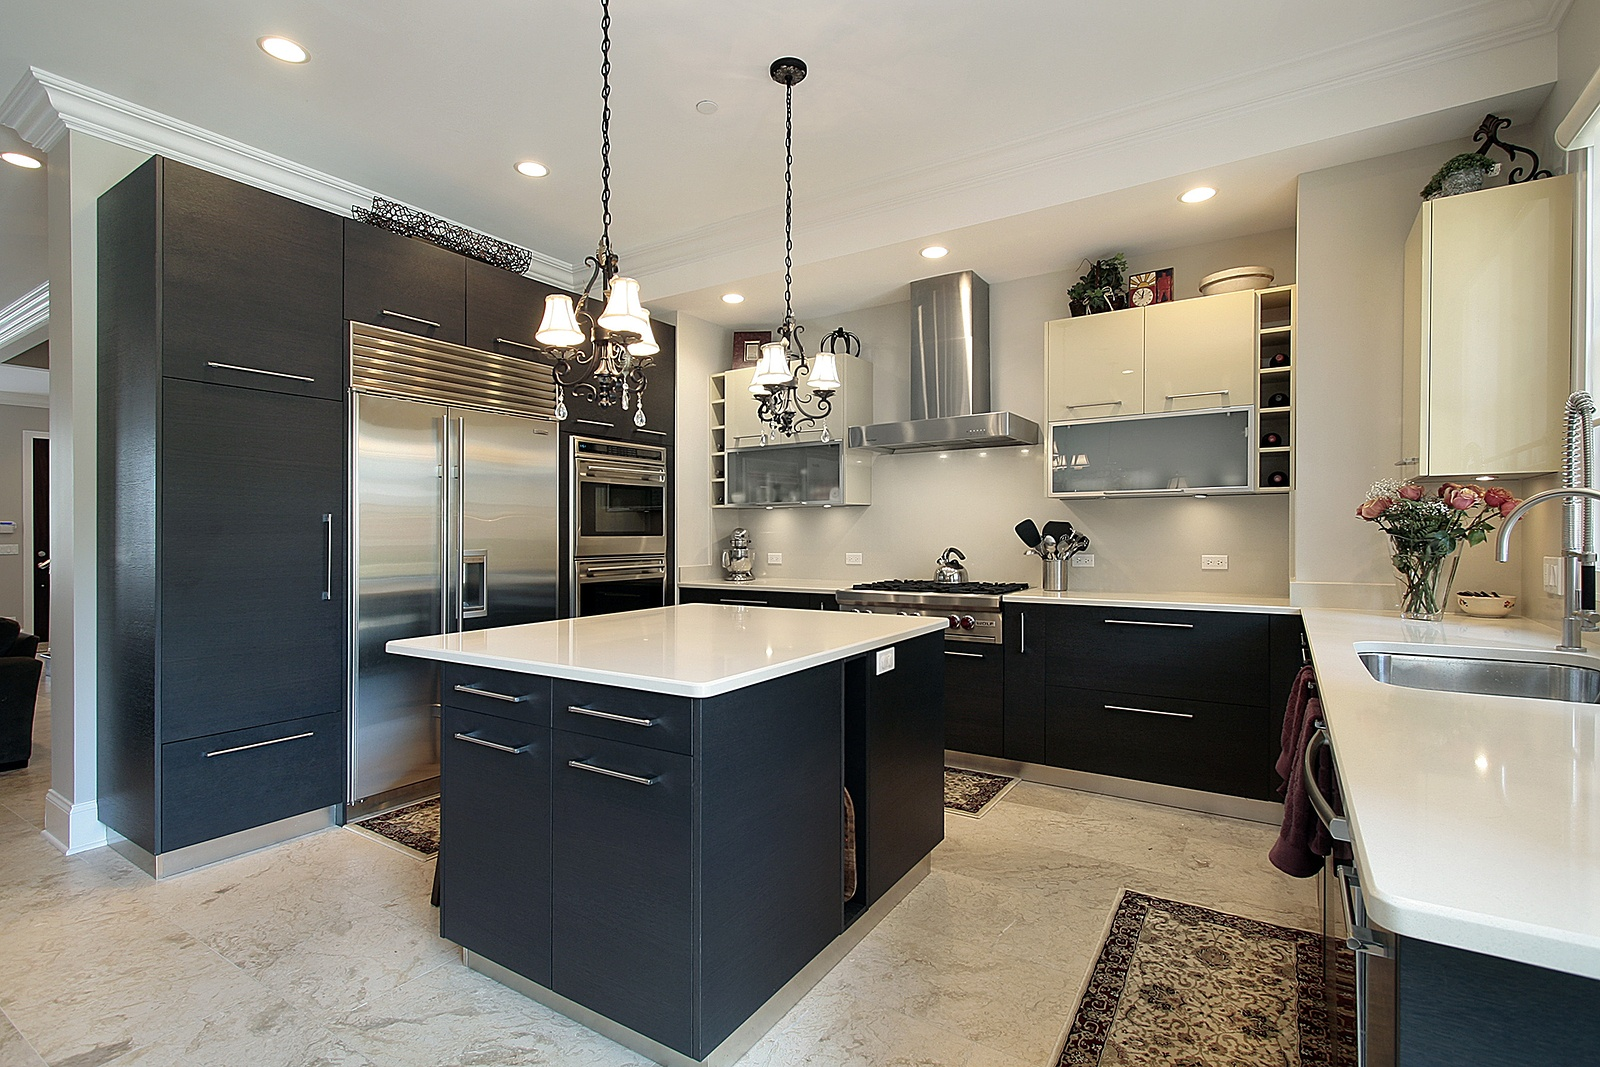 bigstock-Kitchen-With-Black-Cabinets-5118439.jpg